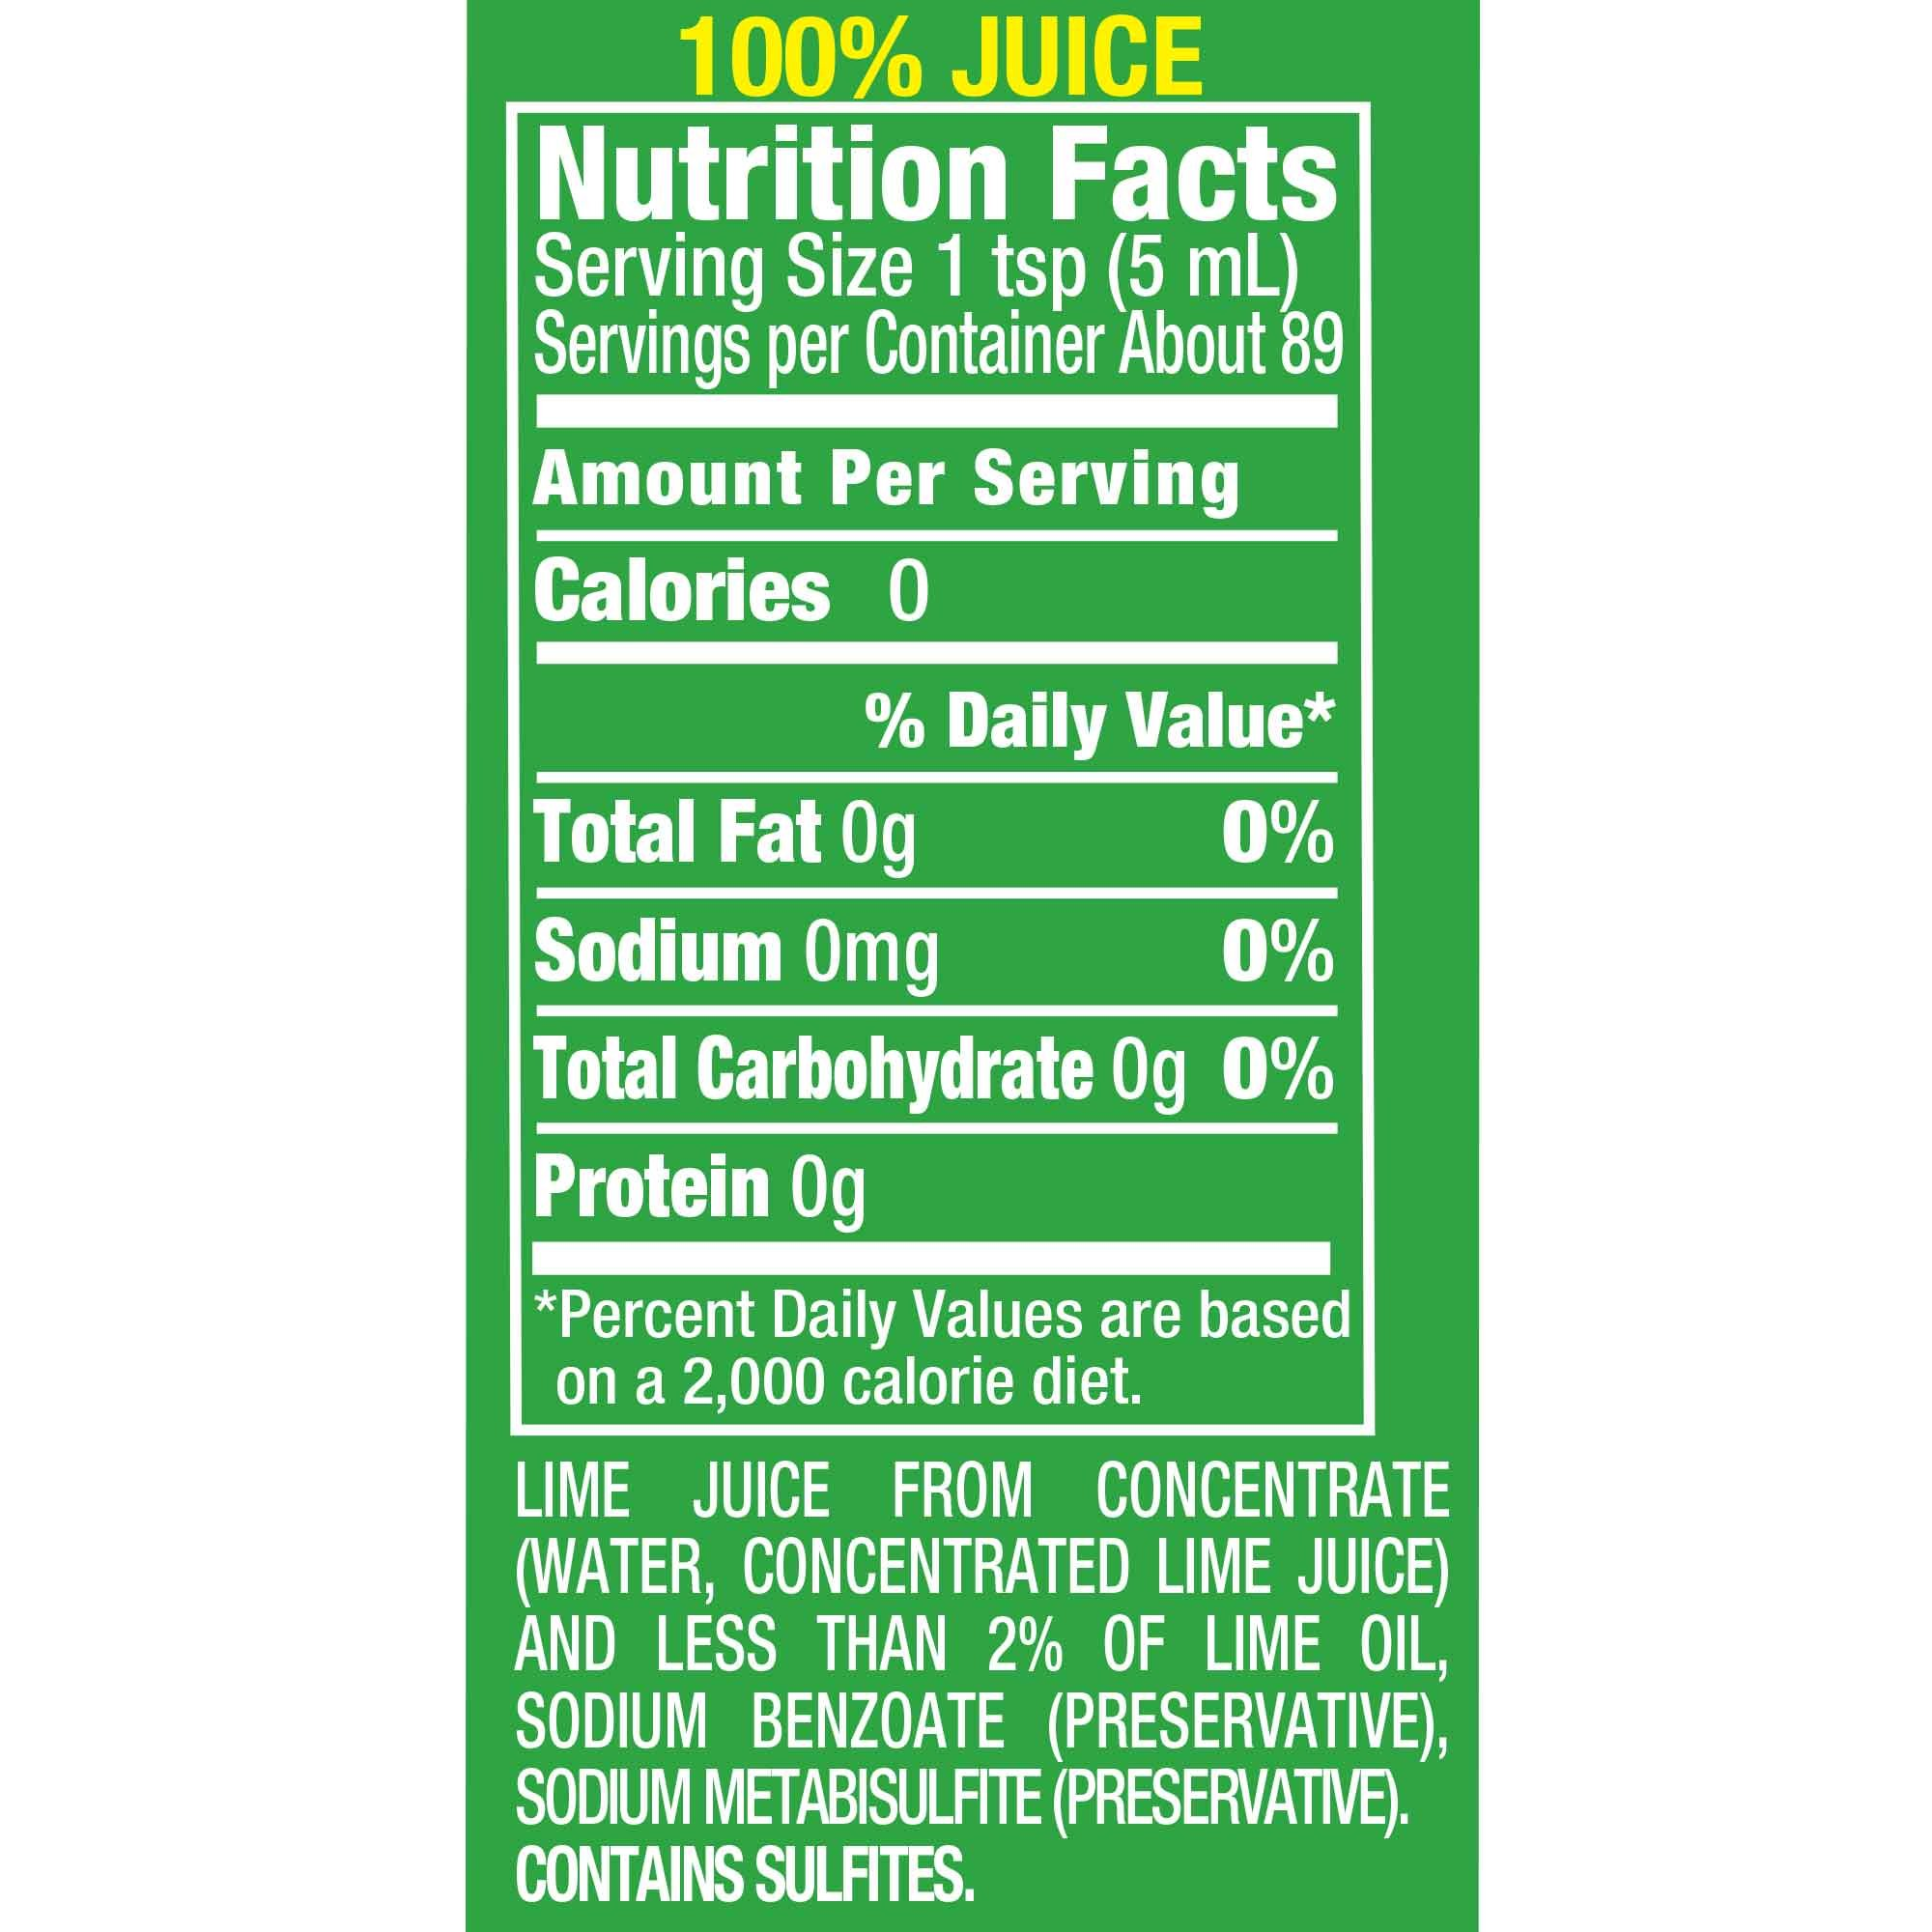 ReaLime 100% Lime Juice, 15 Fluid Ounce Bottle (Pack of 12) by Realime (Image #4)